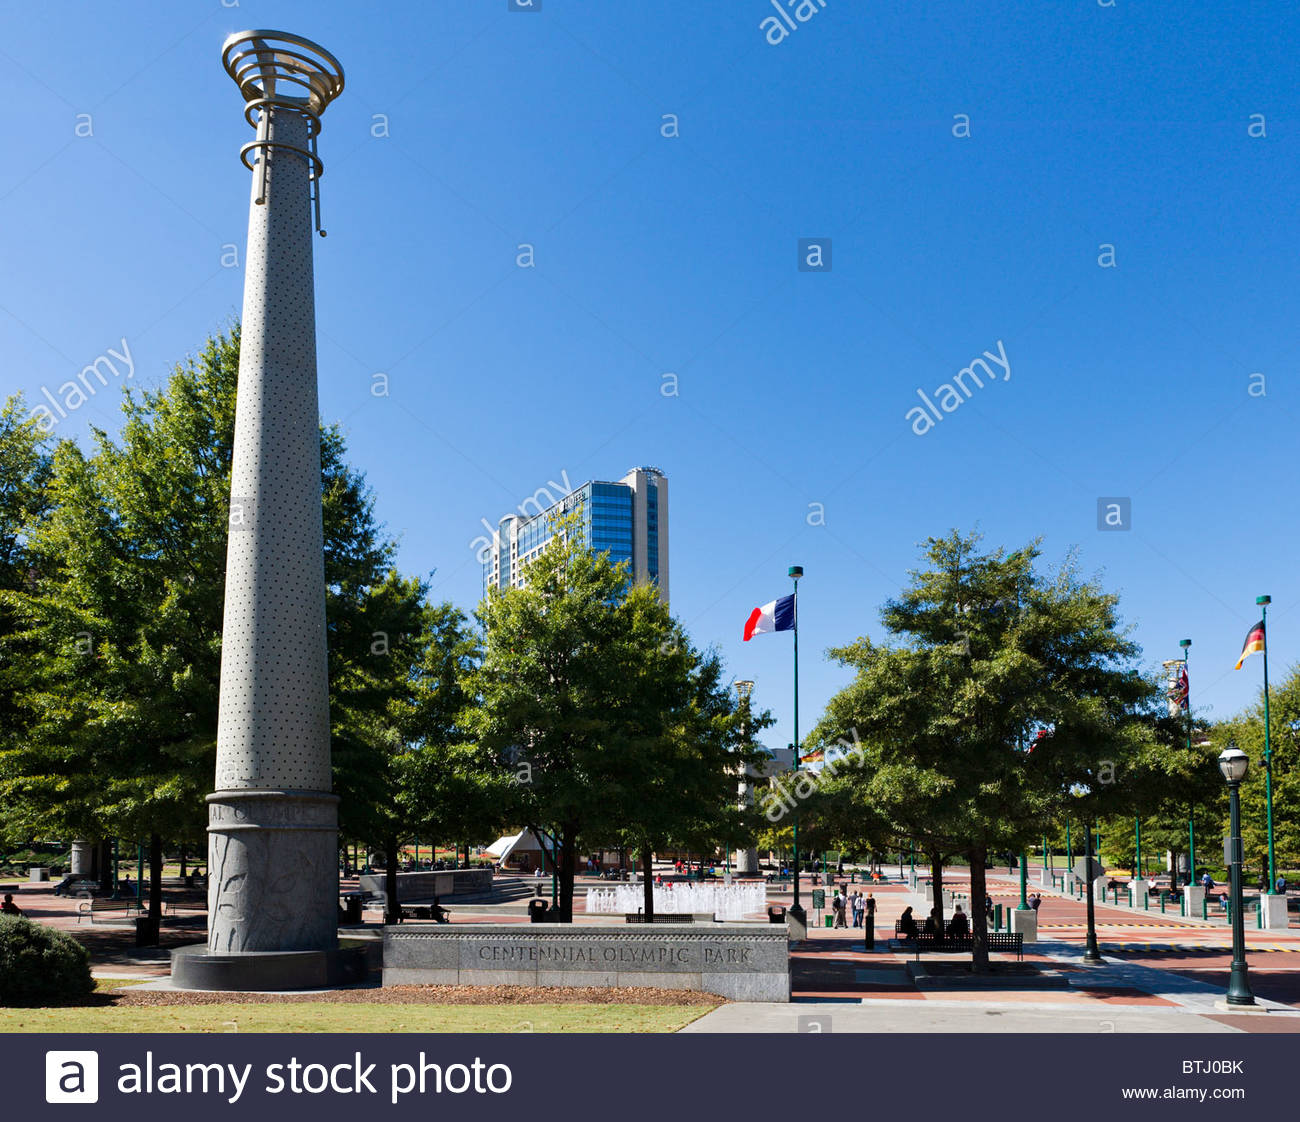 The Centennial Olympic Park with the Omni Hotel in the background 1300x1122